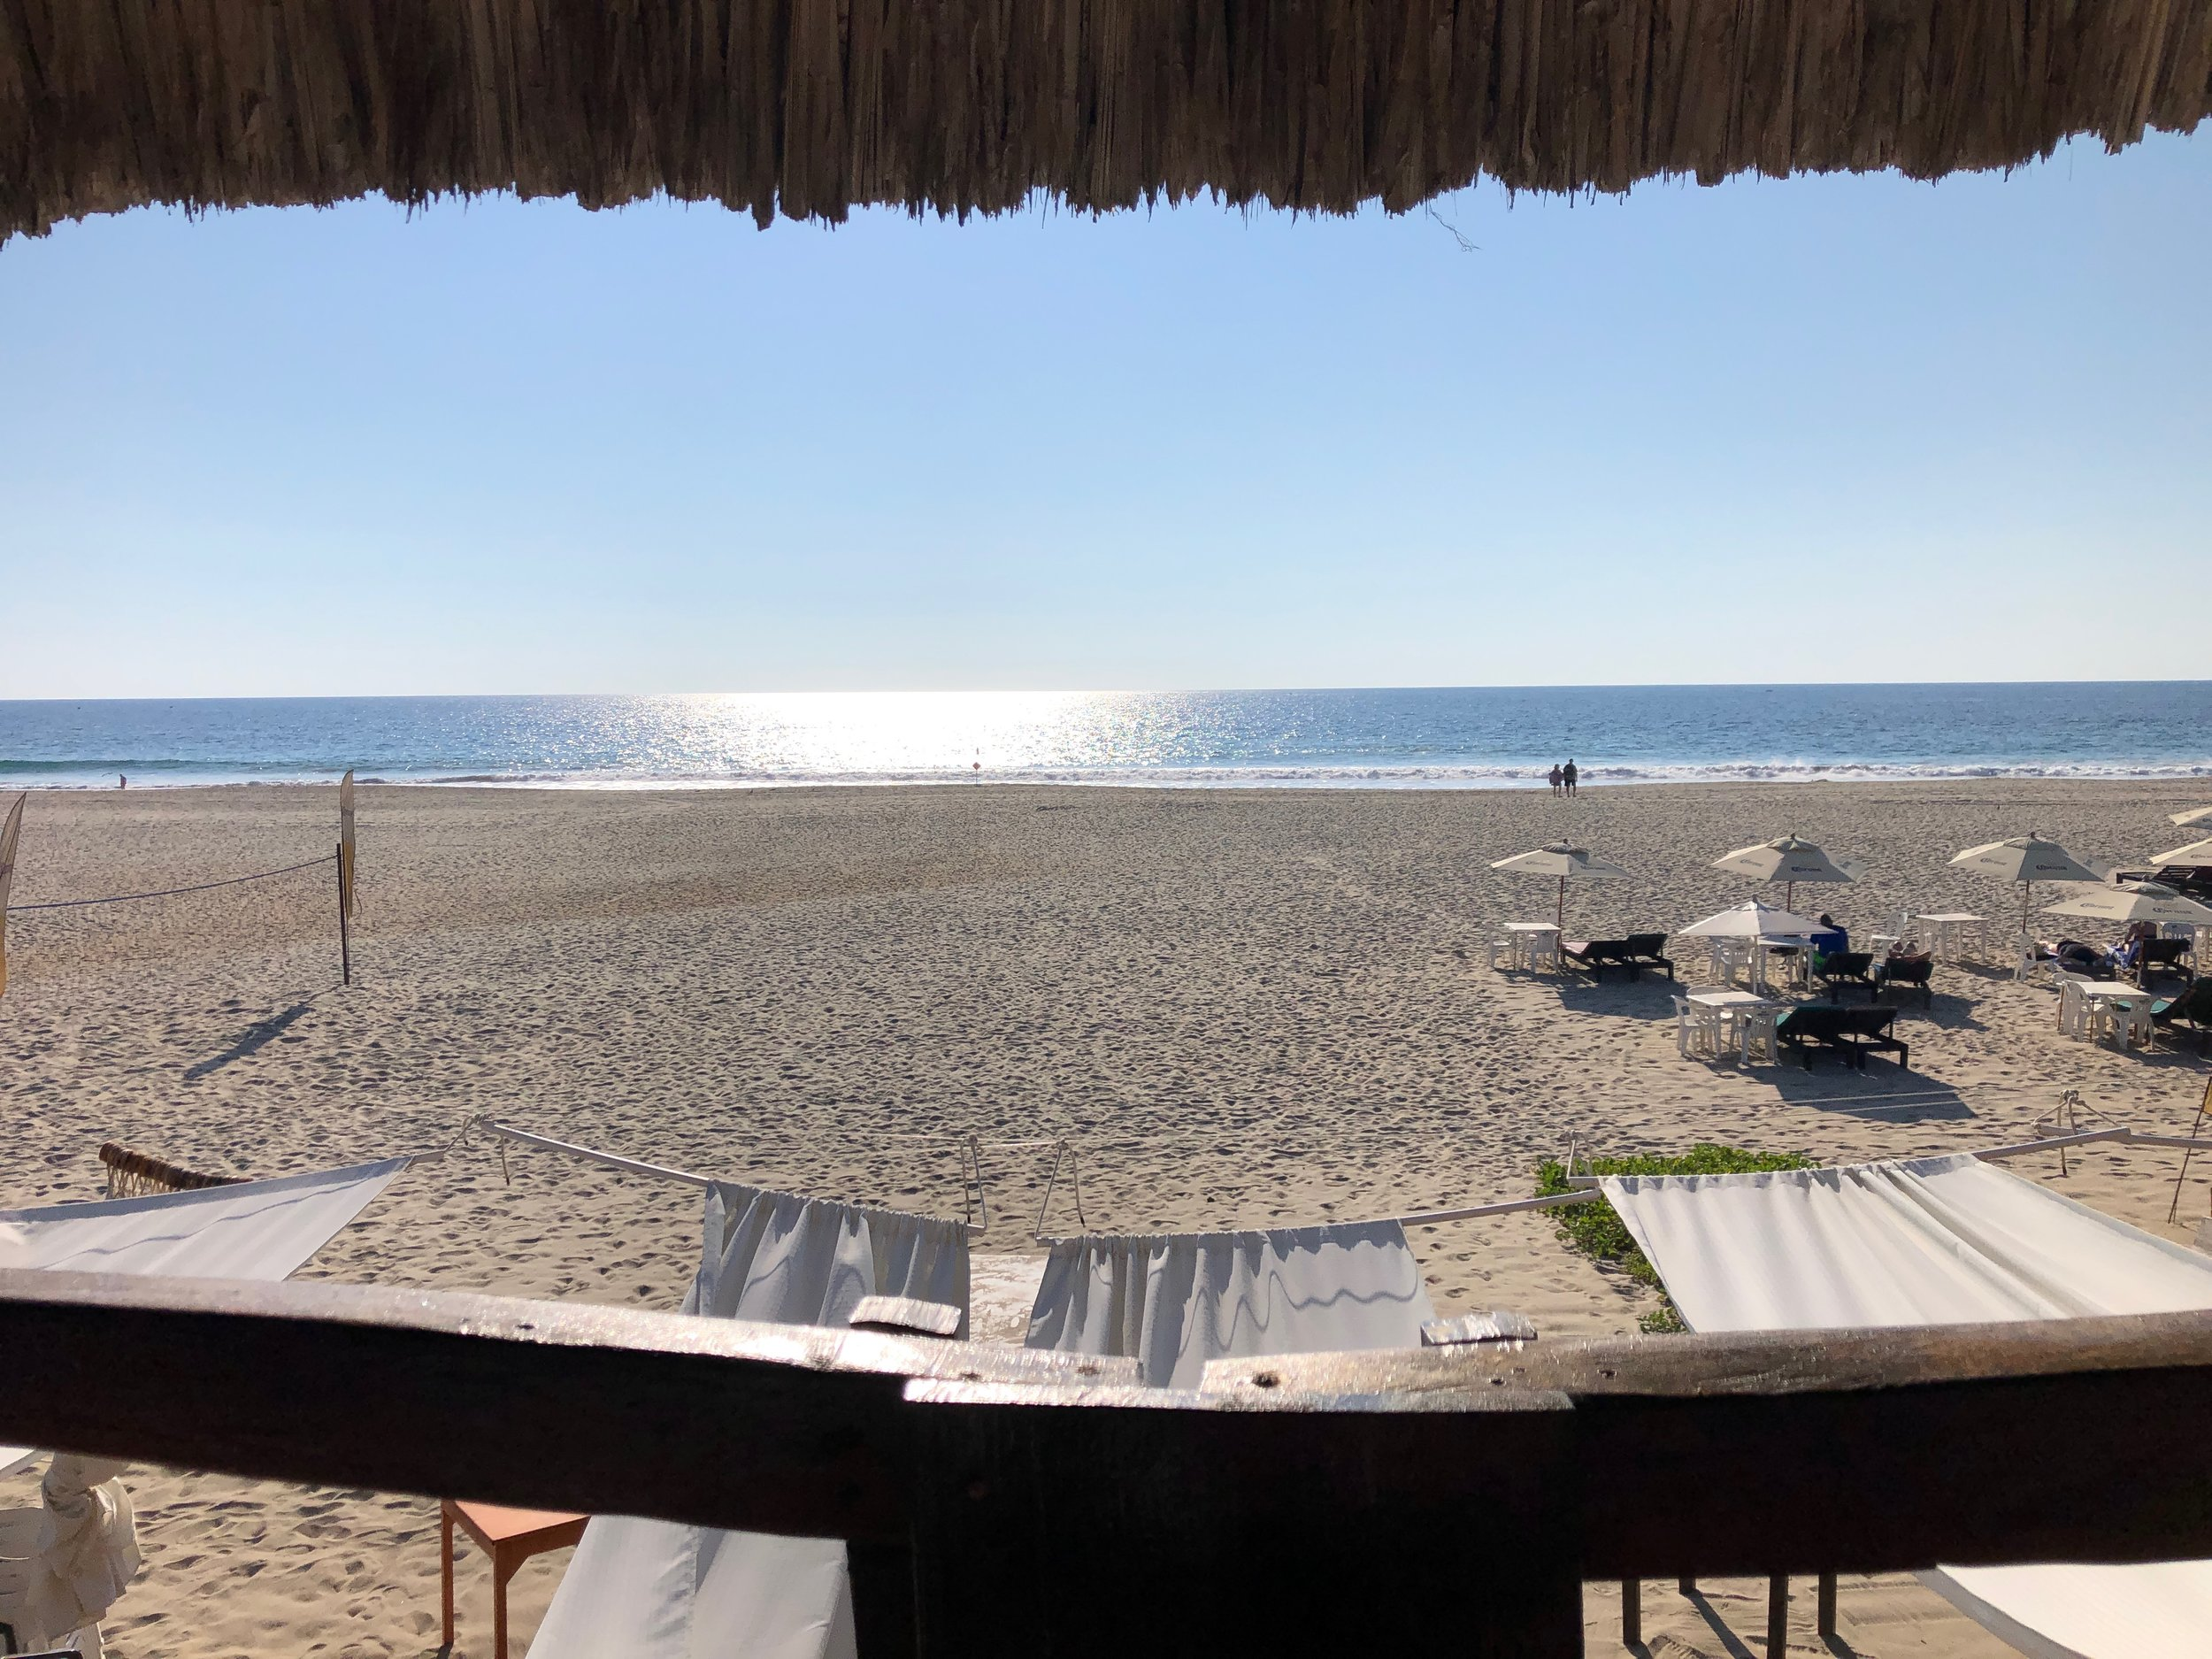 The view from one of our favorite restaurants on the beach.